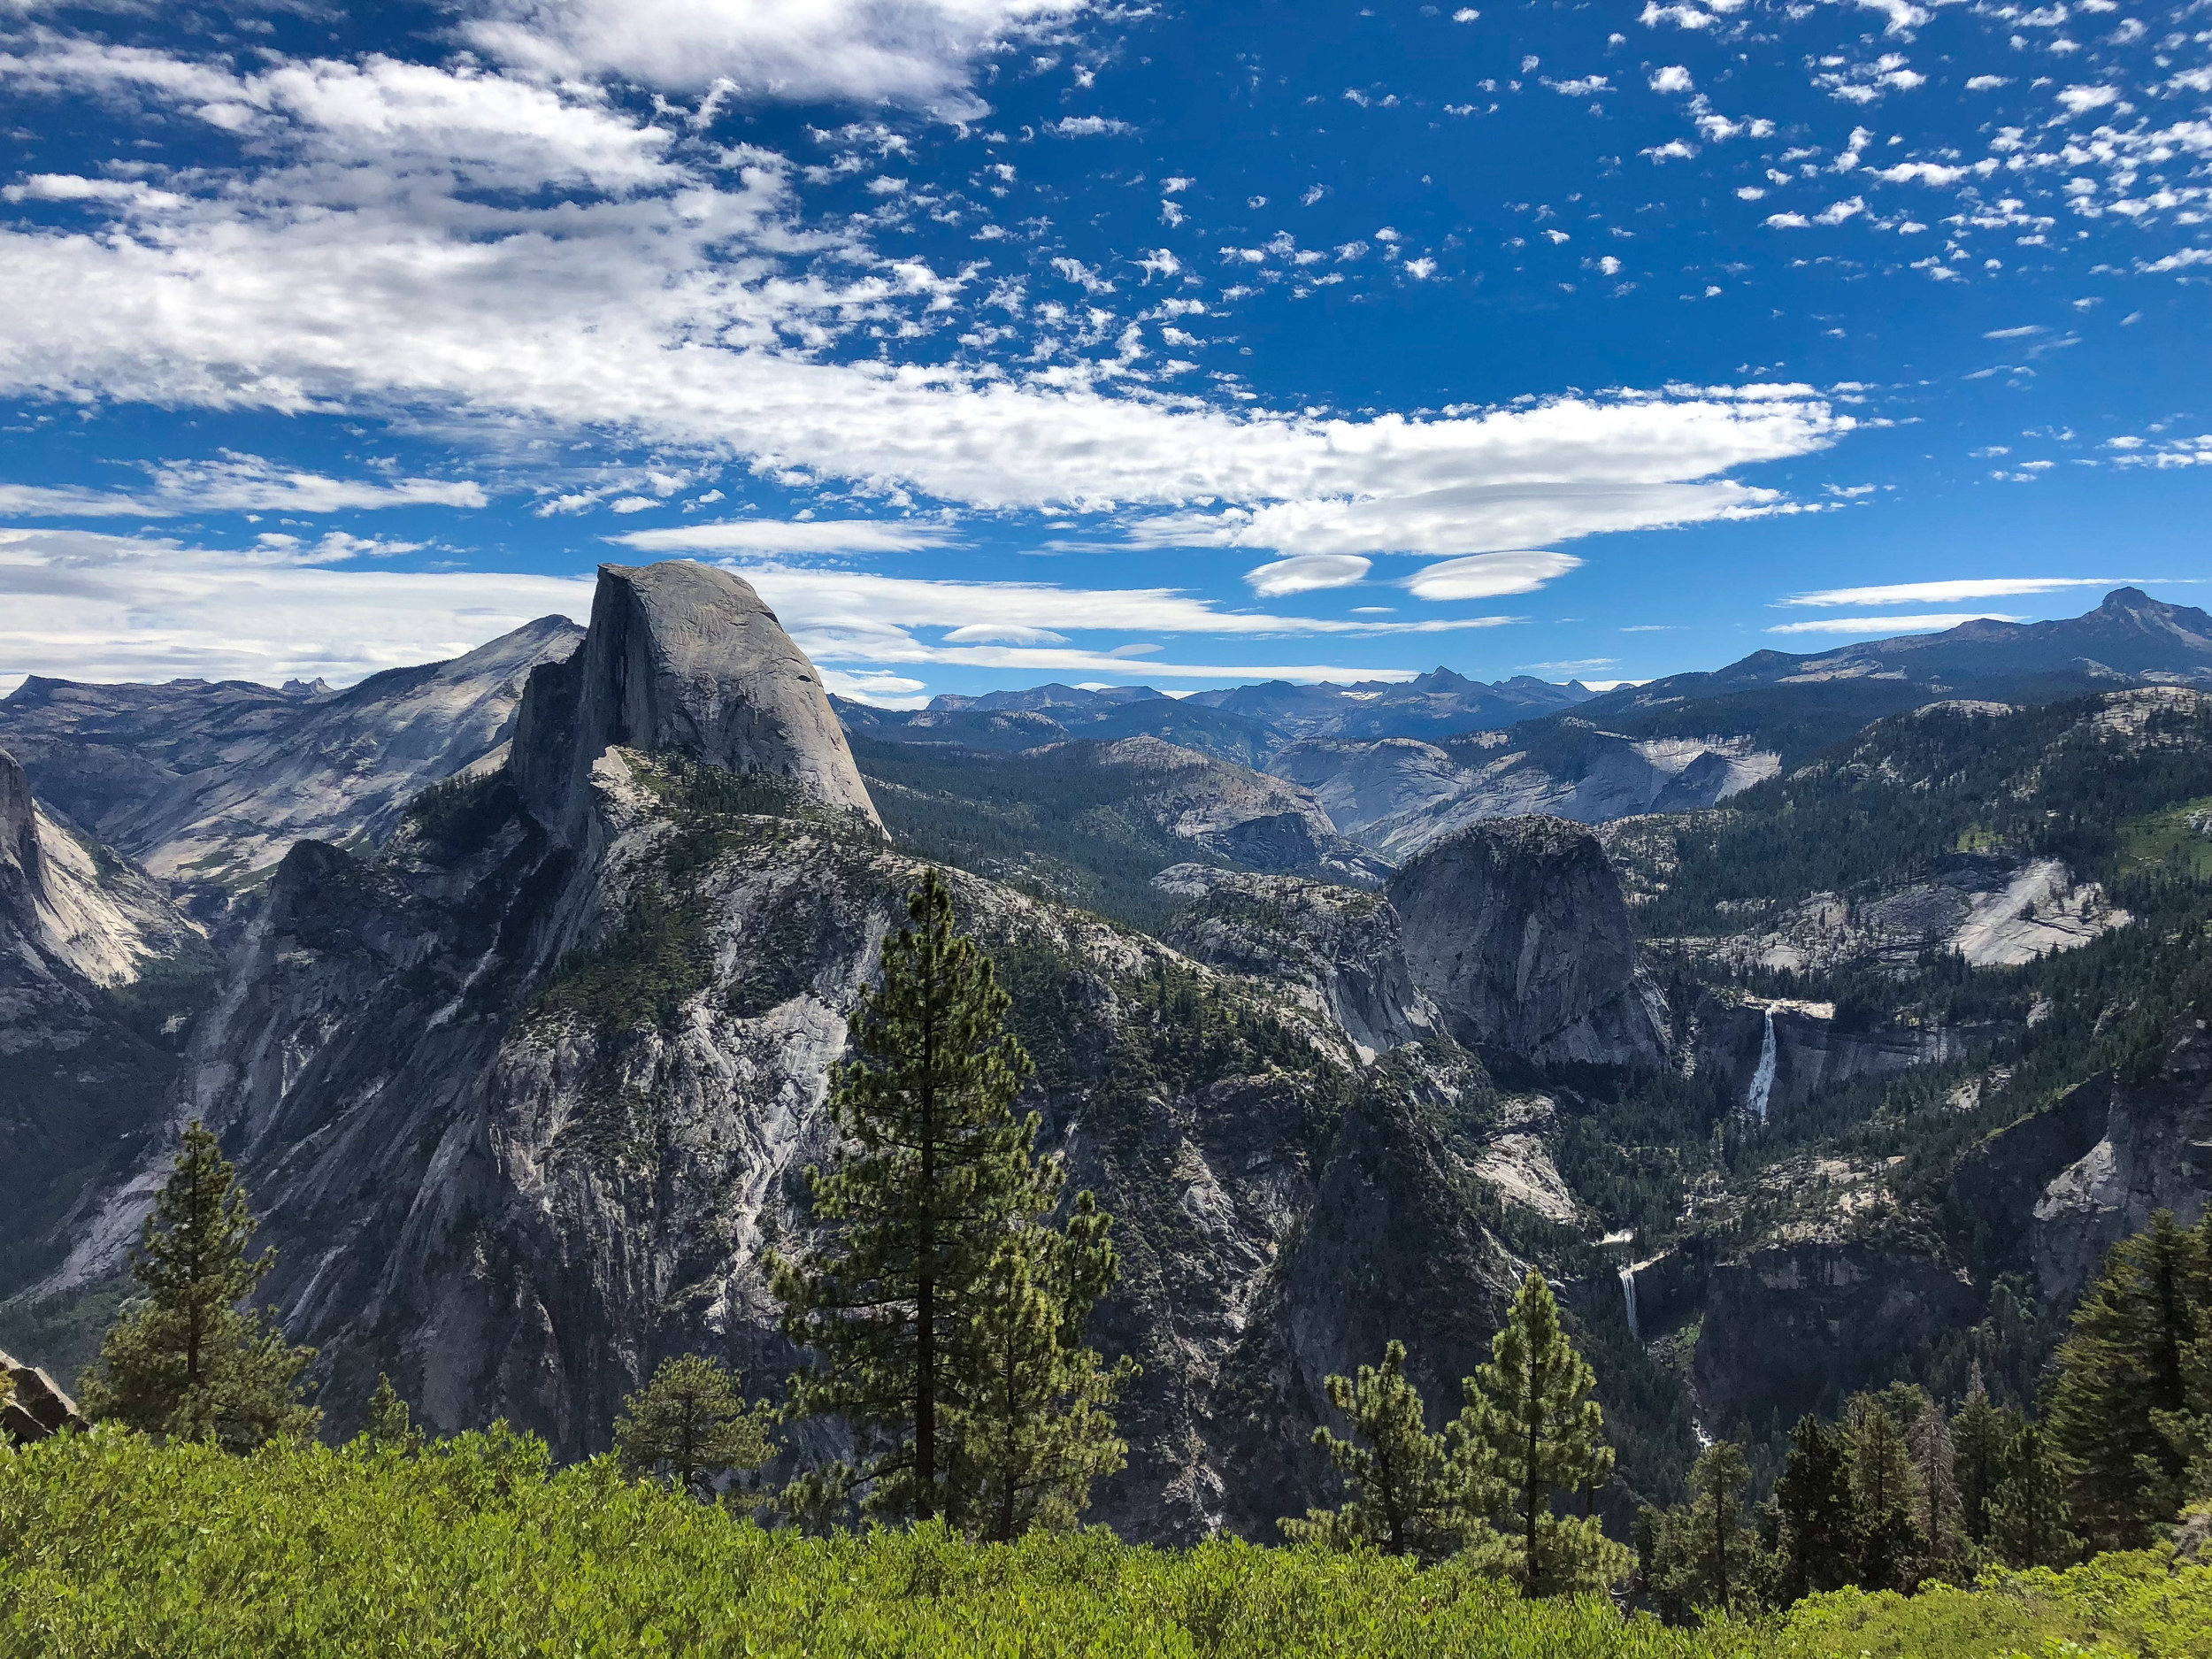 Yosemite, California (15 images)